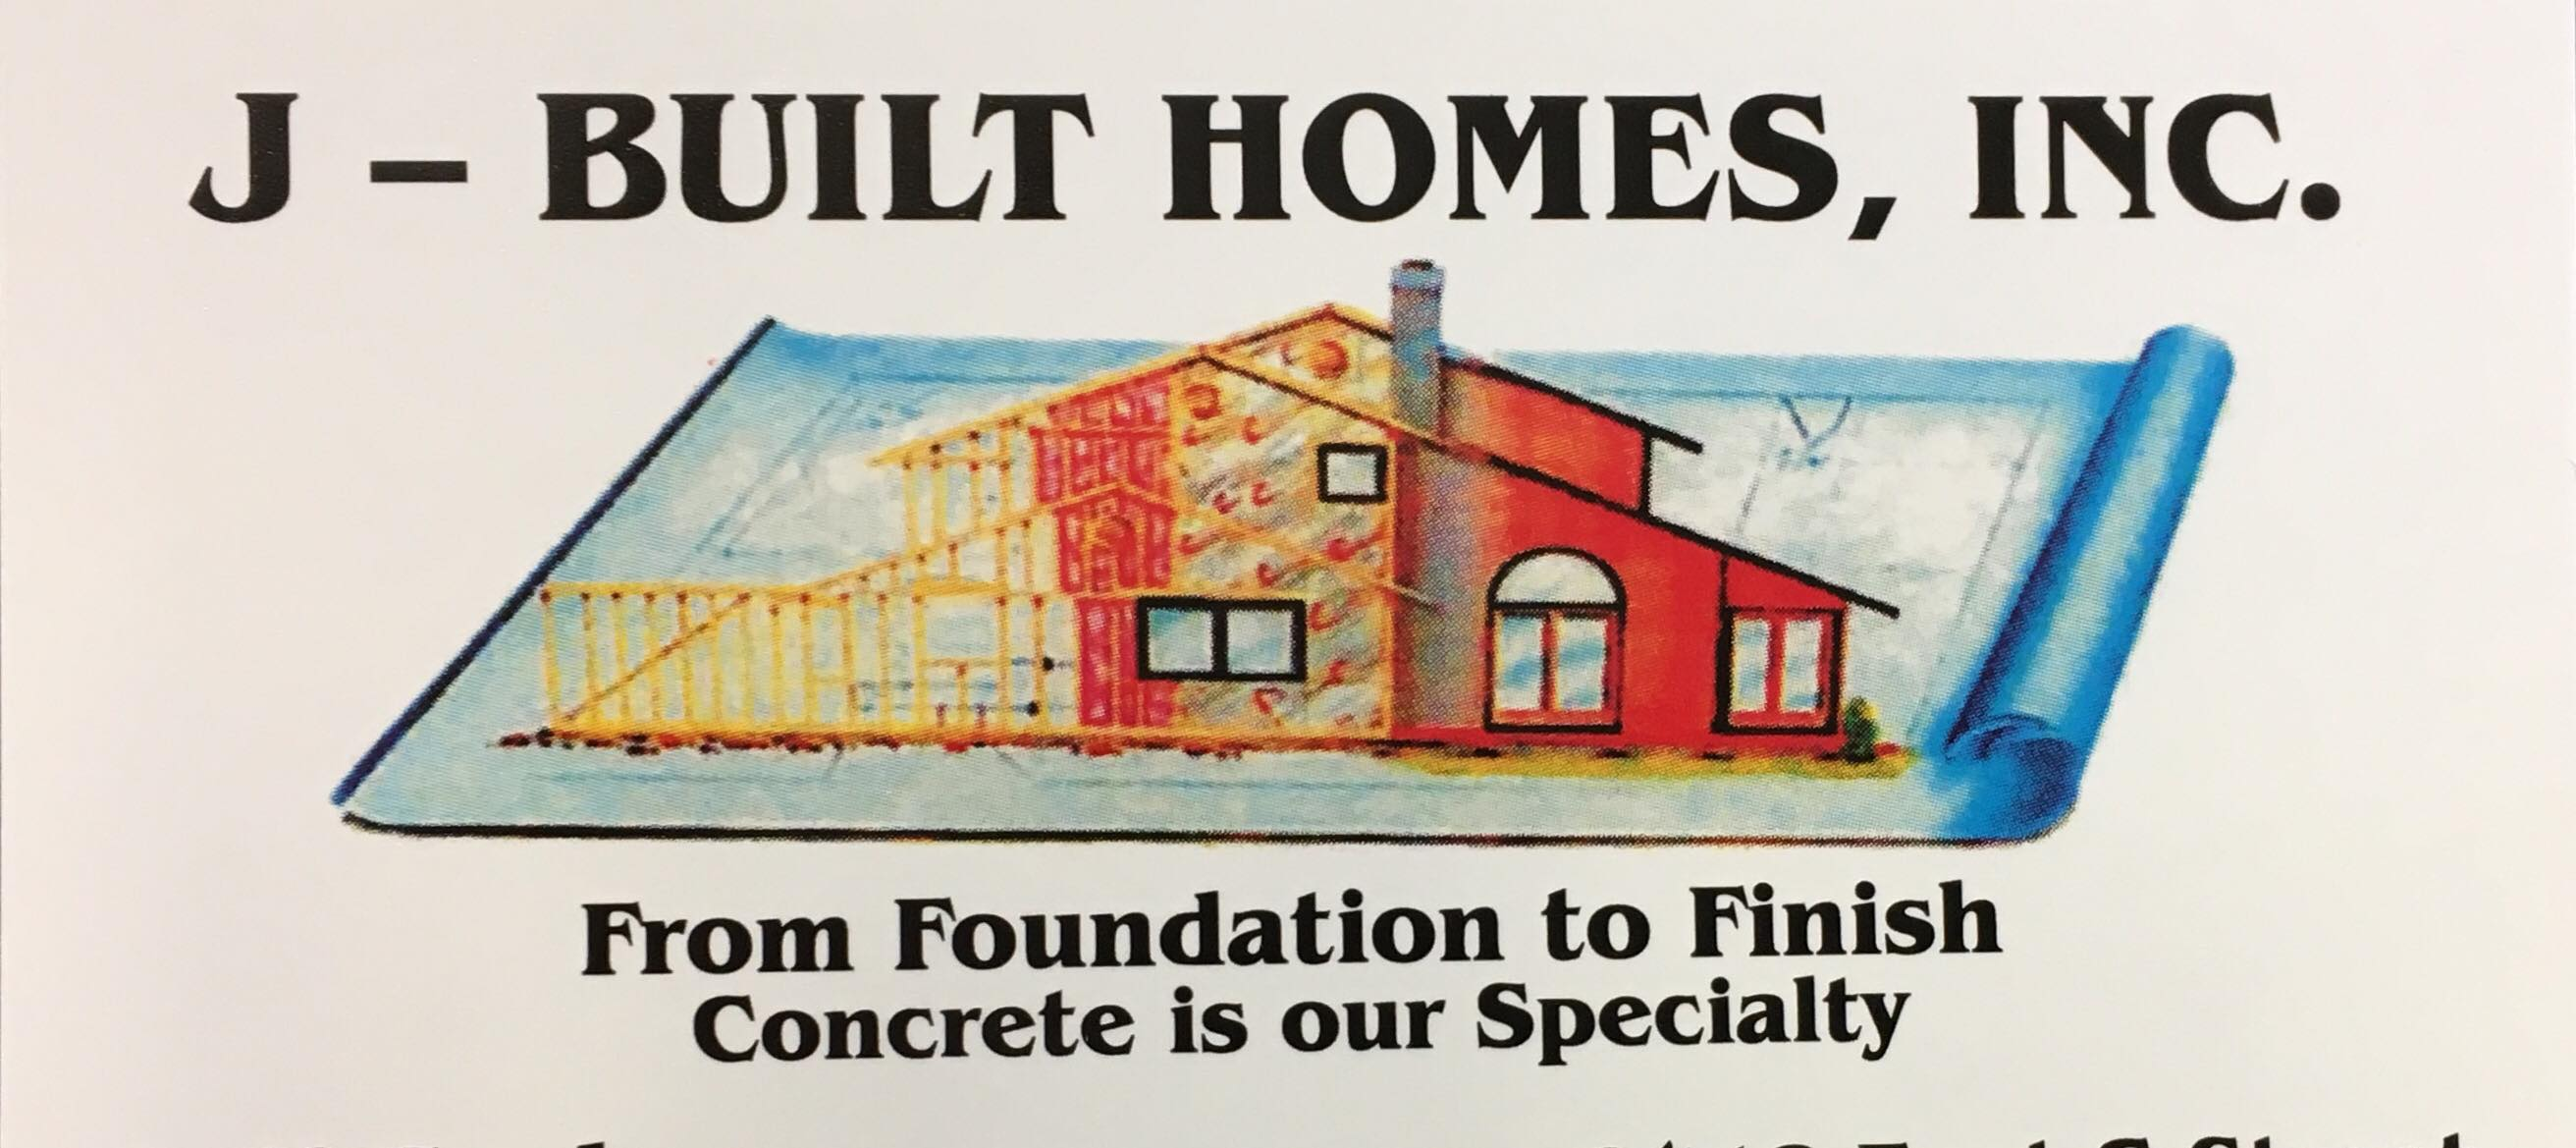 J-Built Homes, Inc Slide Image